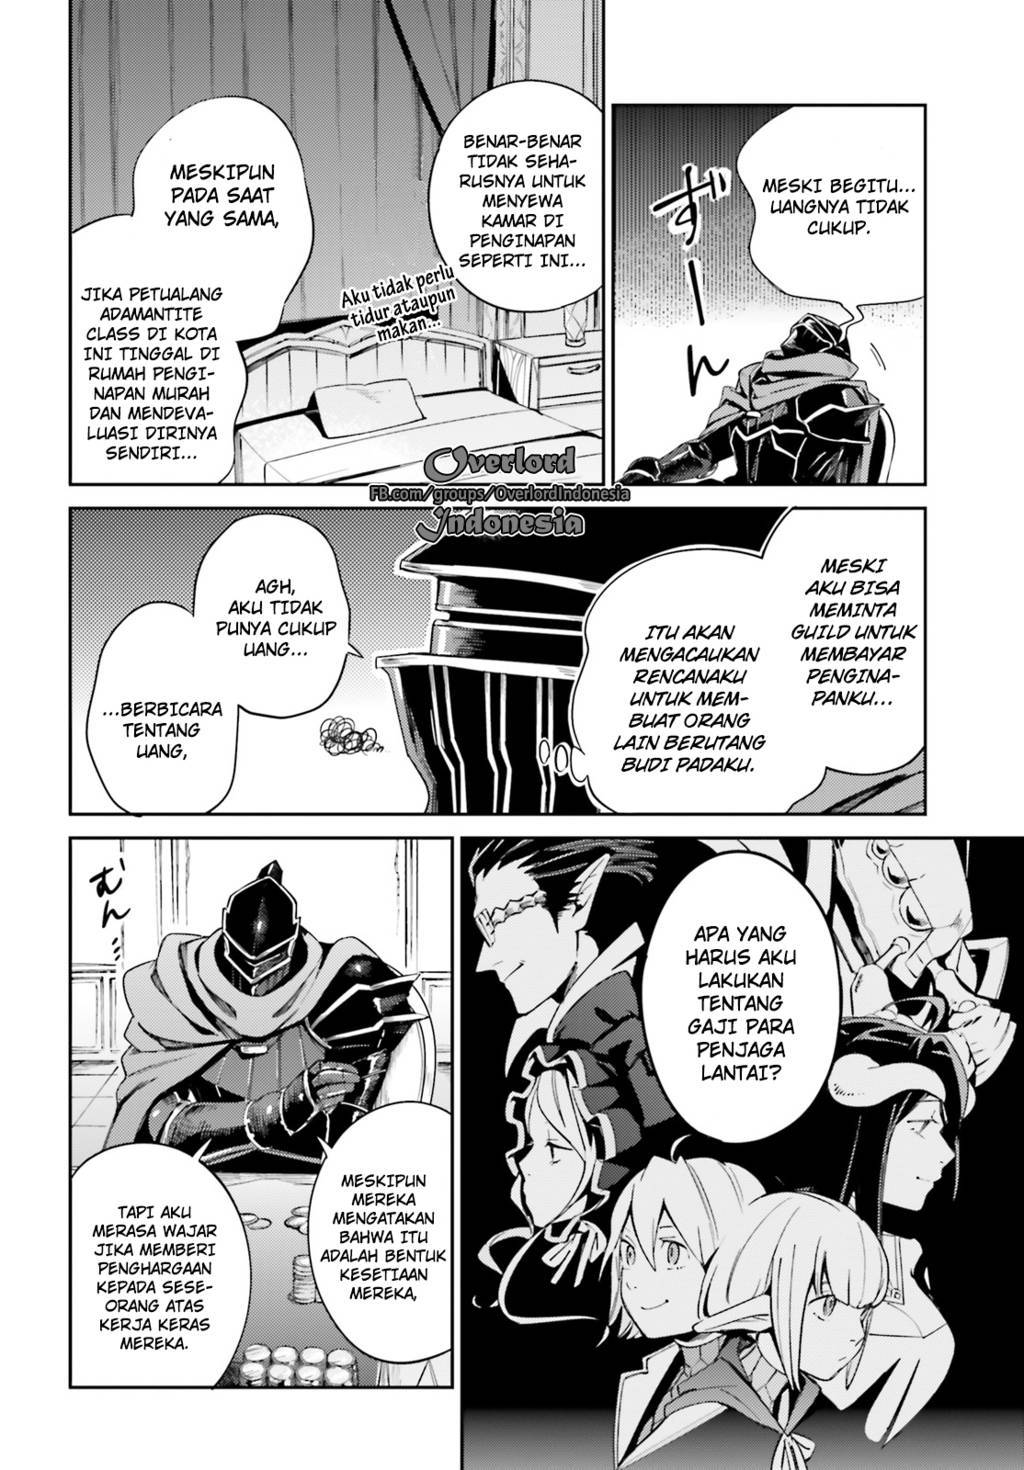 Overlord chapter 31 Bahasa Indonesia